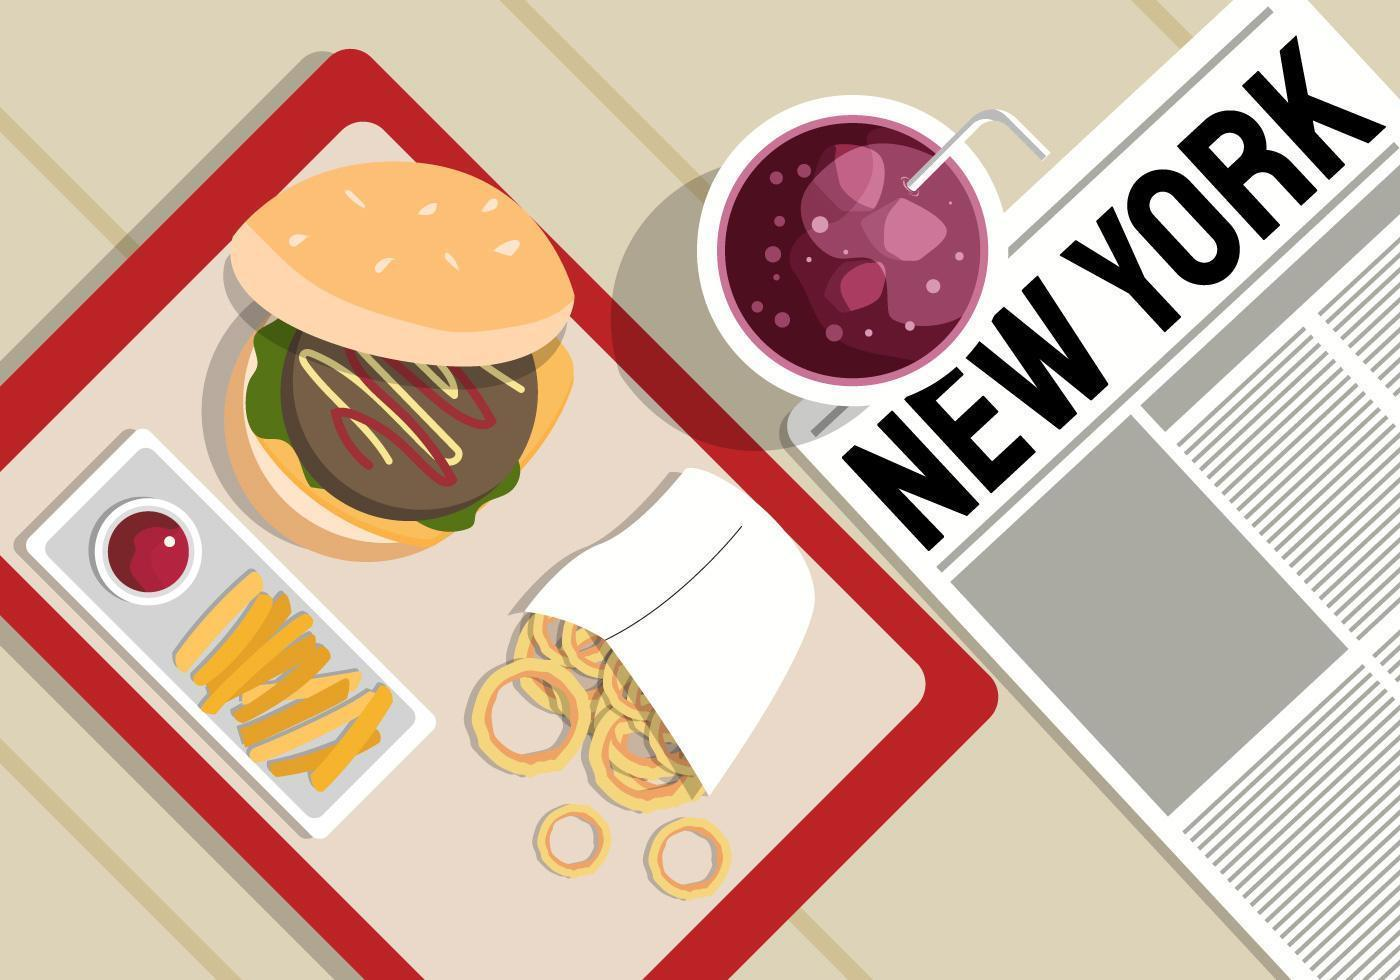 New York Food Background Illustration vector